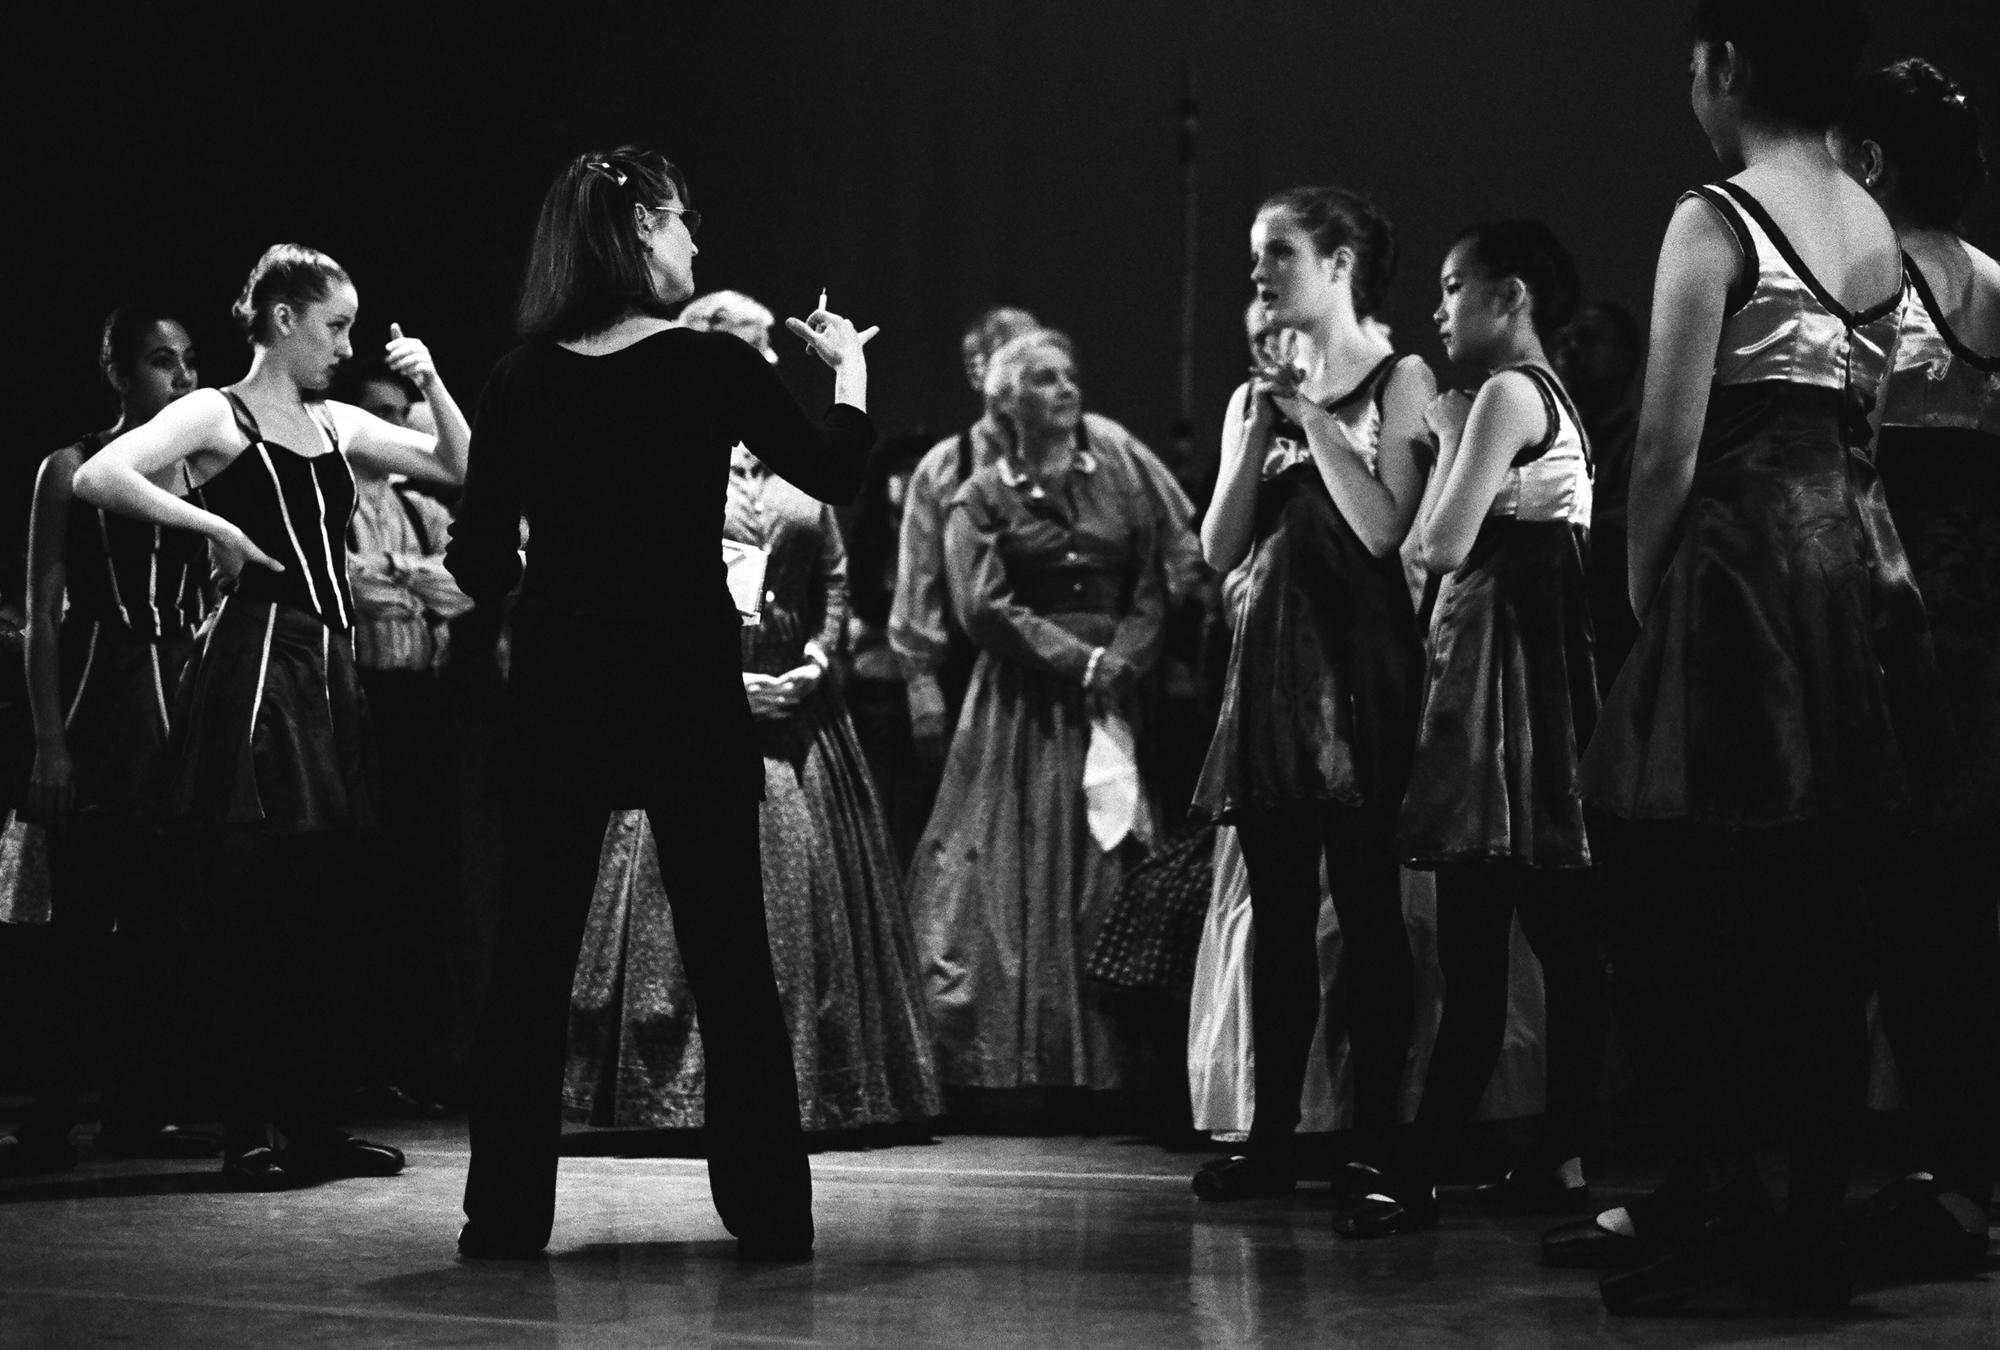 """Abra Rudisil, Creative Director of the Alameda Civic Ballet and retired Principal ballerina of the Oakland Ballet, instructs students at the dress rehearsal of """"United We Dance,"""" at the Kofman Theatre in Alameda, California."""